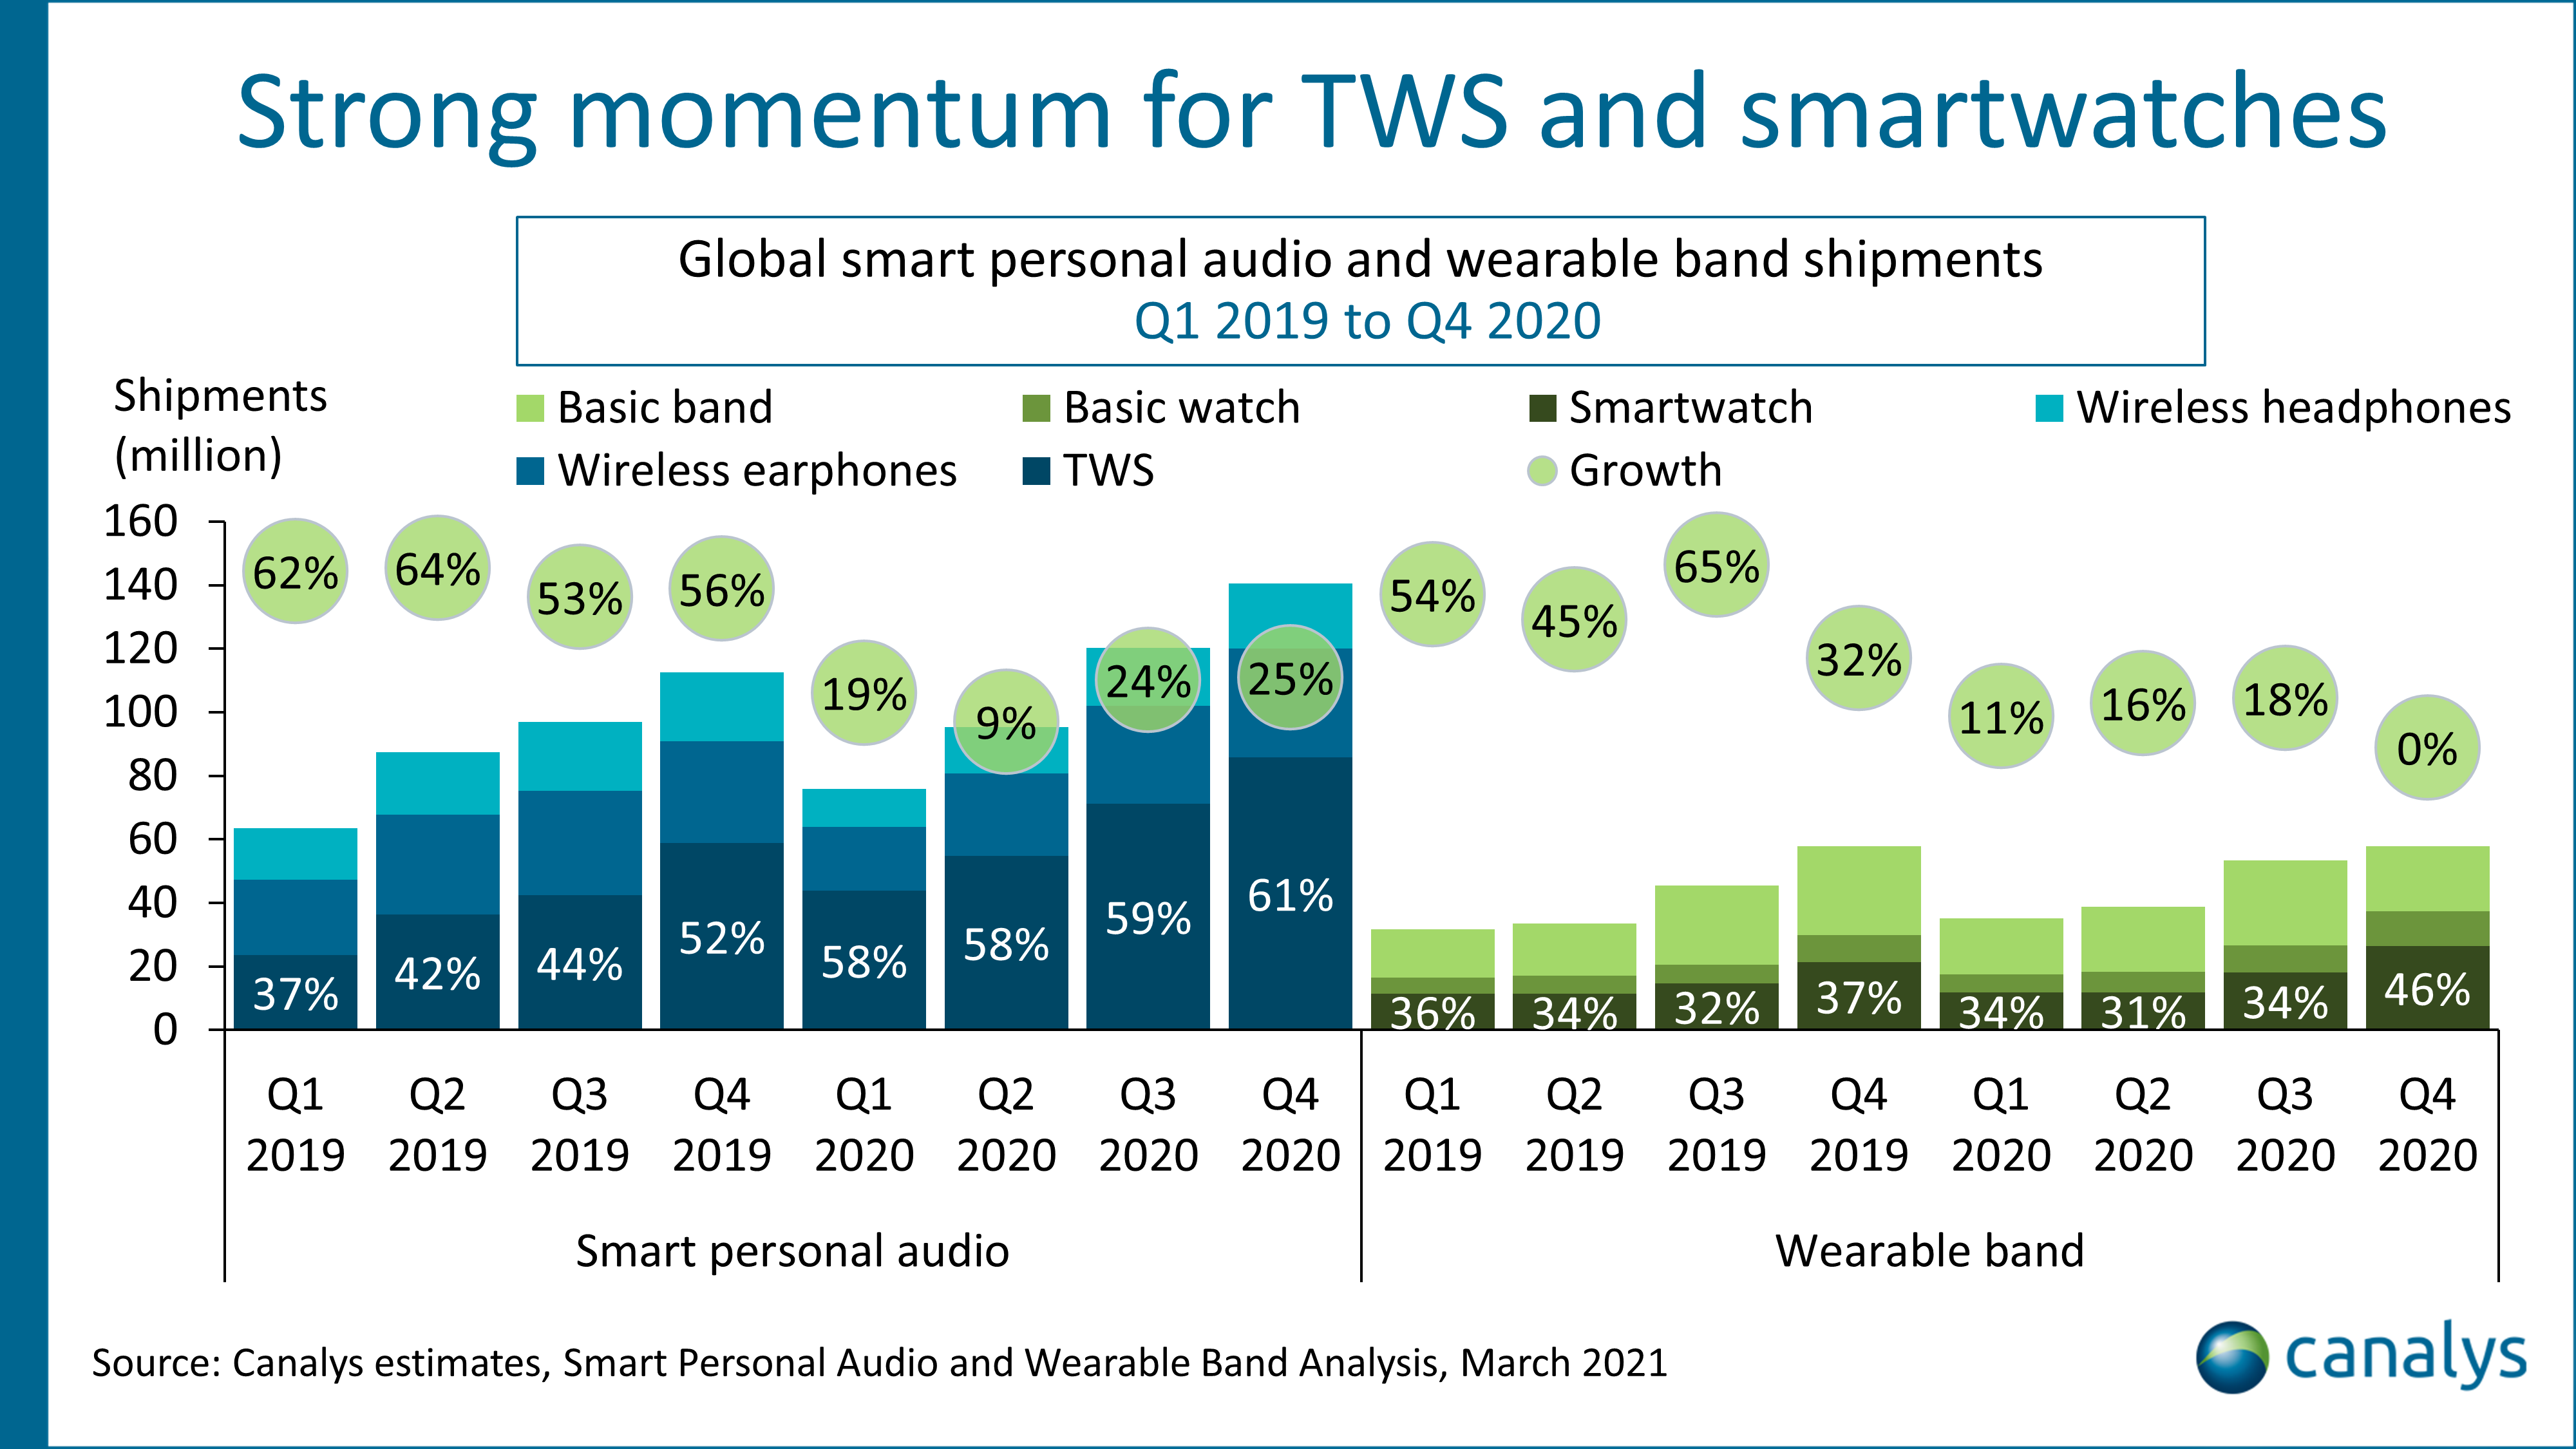 Canalys estimates, Smart Personal Audio and Wearable Band Analysis, March 2021